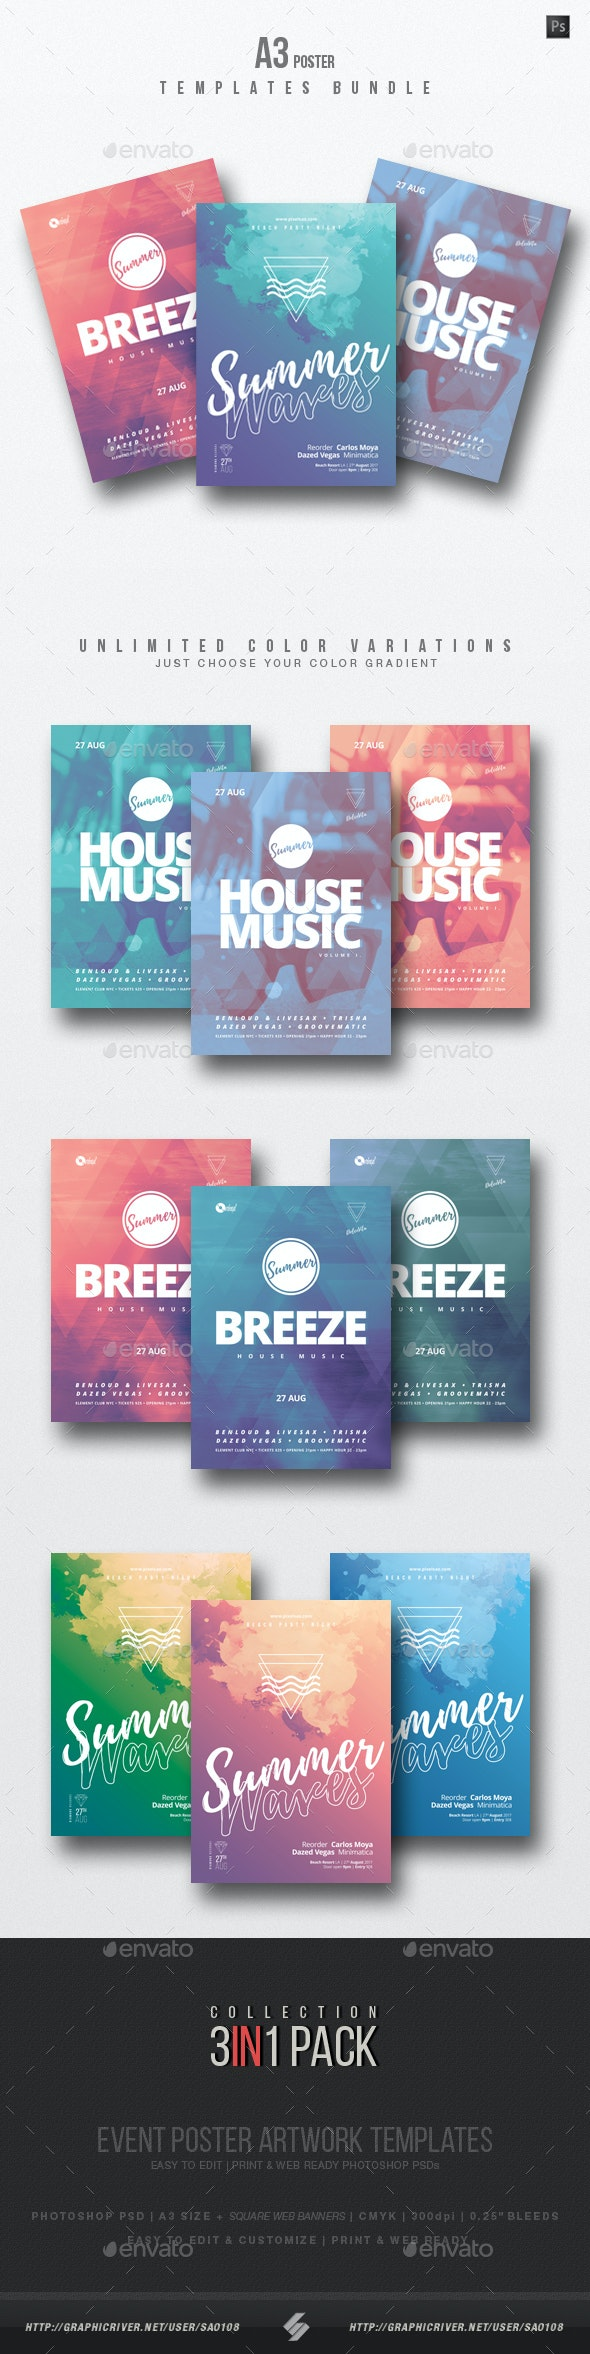 House Music 3 - Party Flyer / Poster Templates Bundle - Clubs & Parties Events